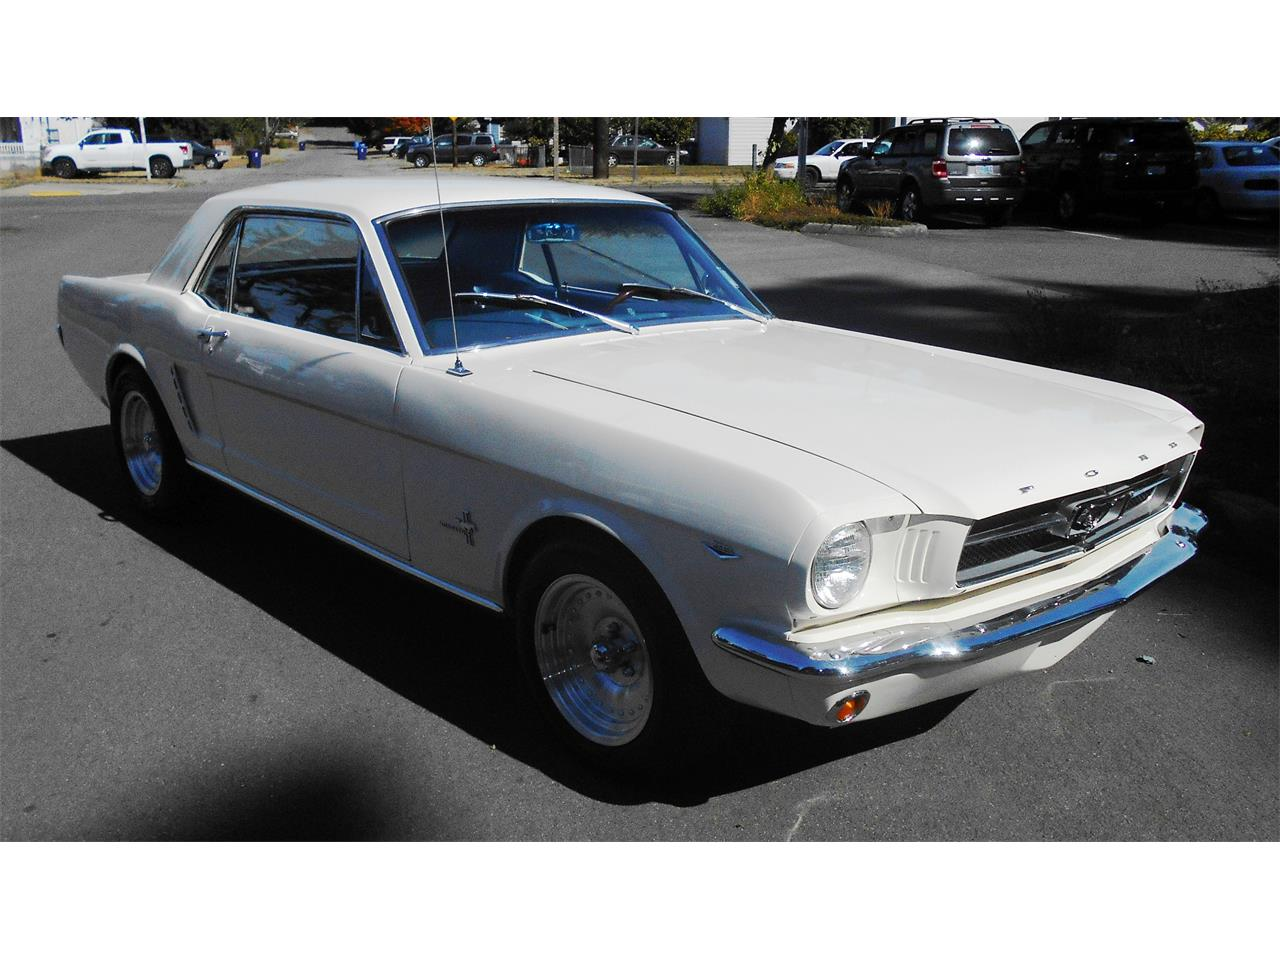 Large Picture of Classic '65 Ford Mustang located in Tacoma Washington - $18,950.00 Offered by Austin's Pro Max - JB63